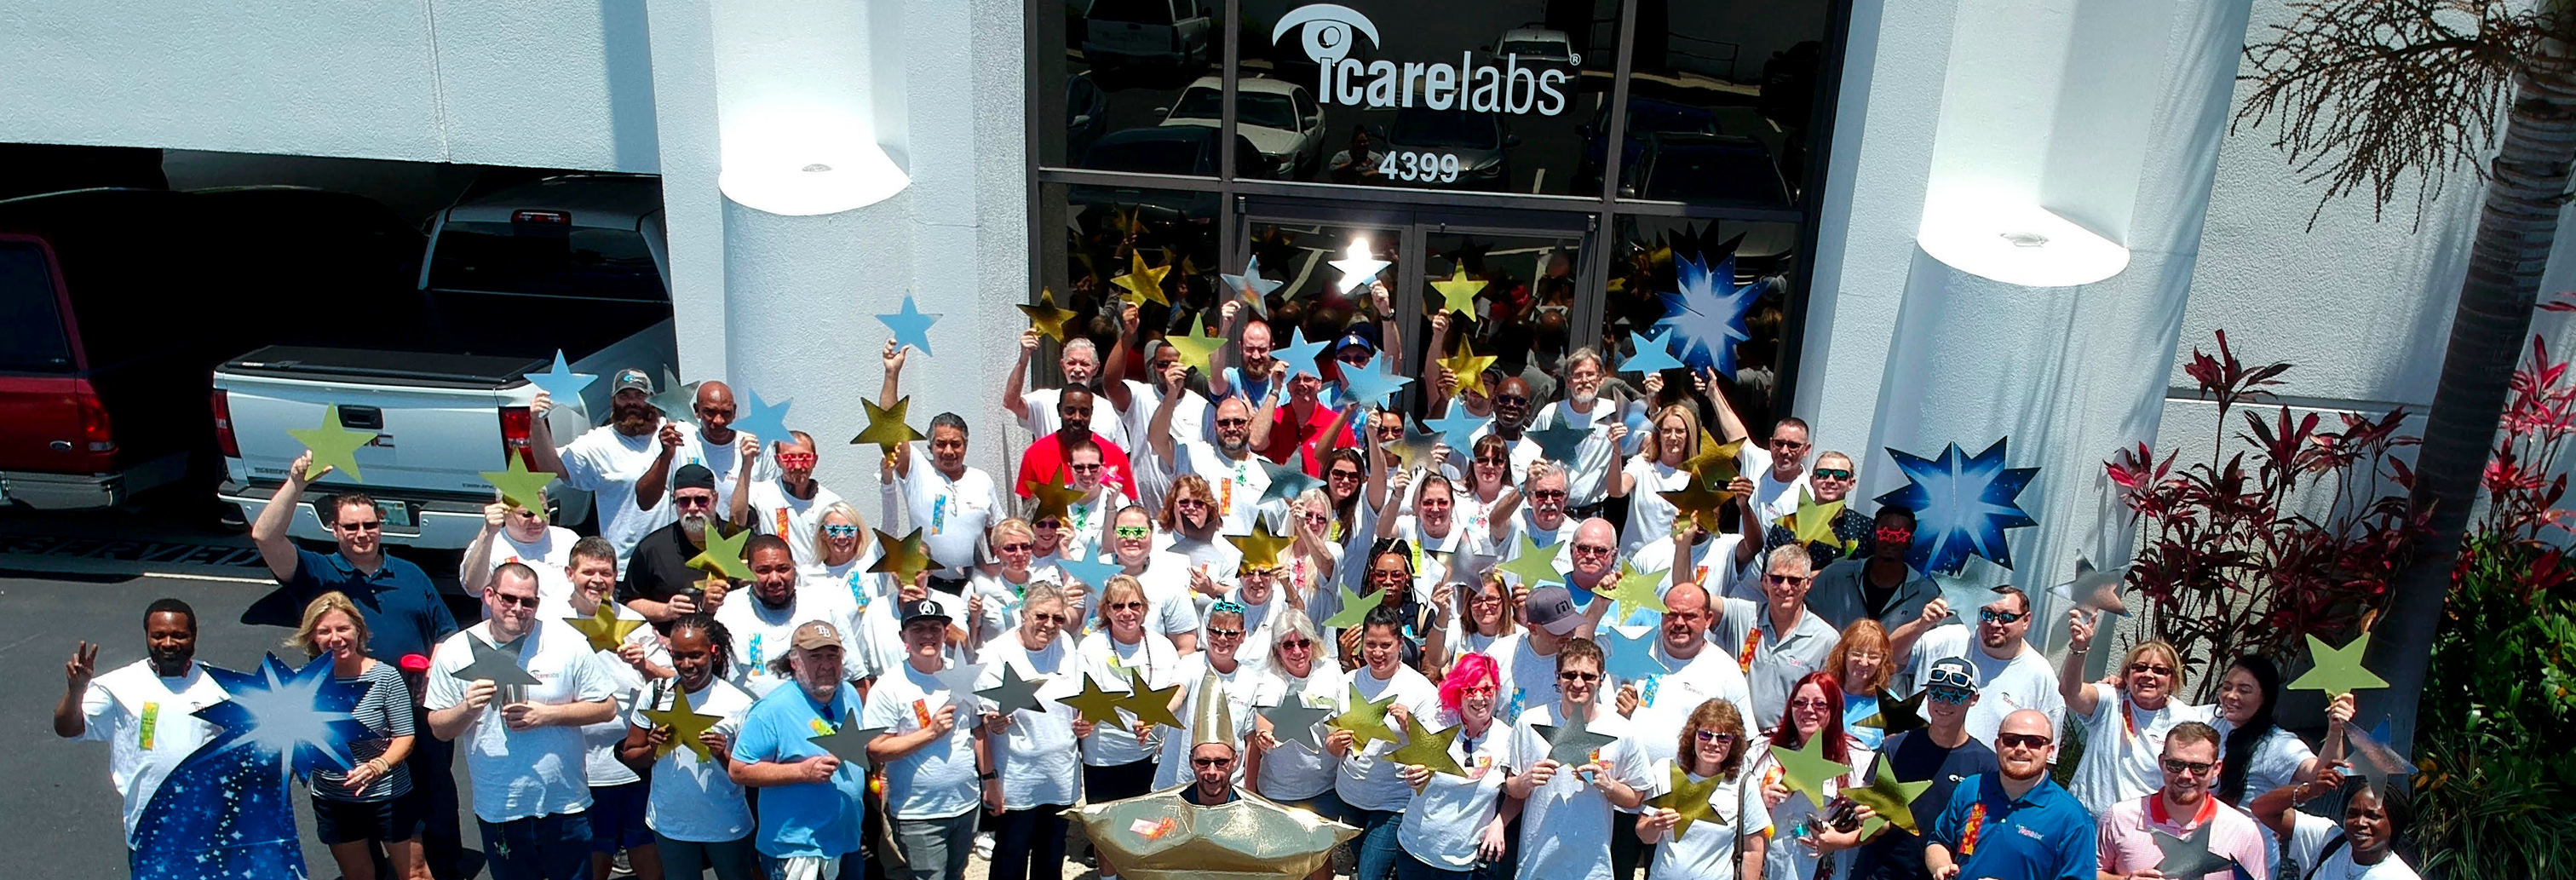 The IcareLabs family is here for your optical!